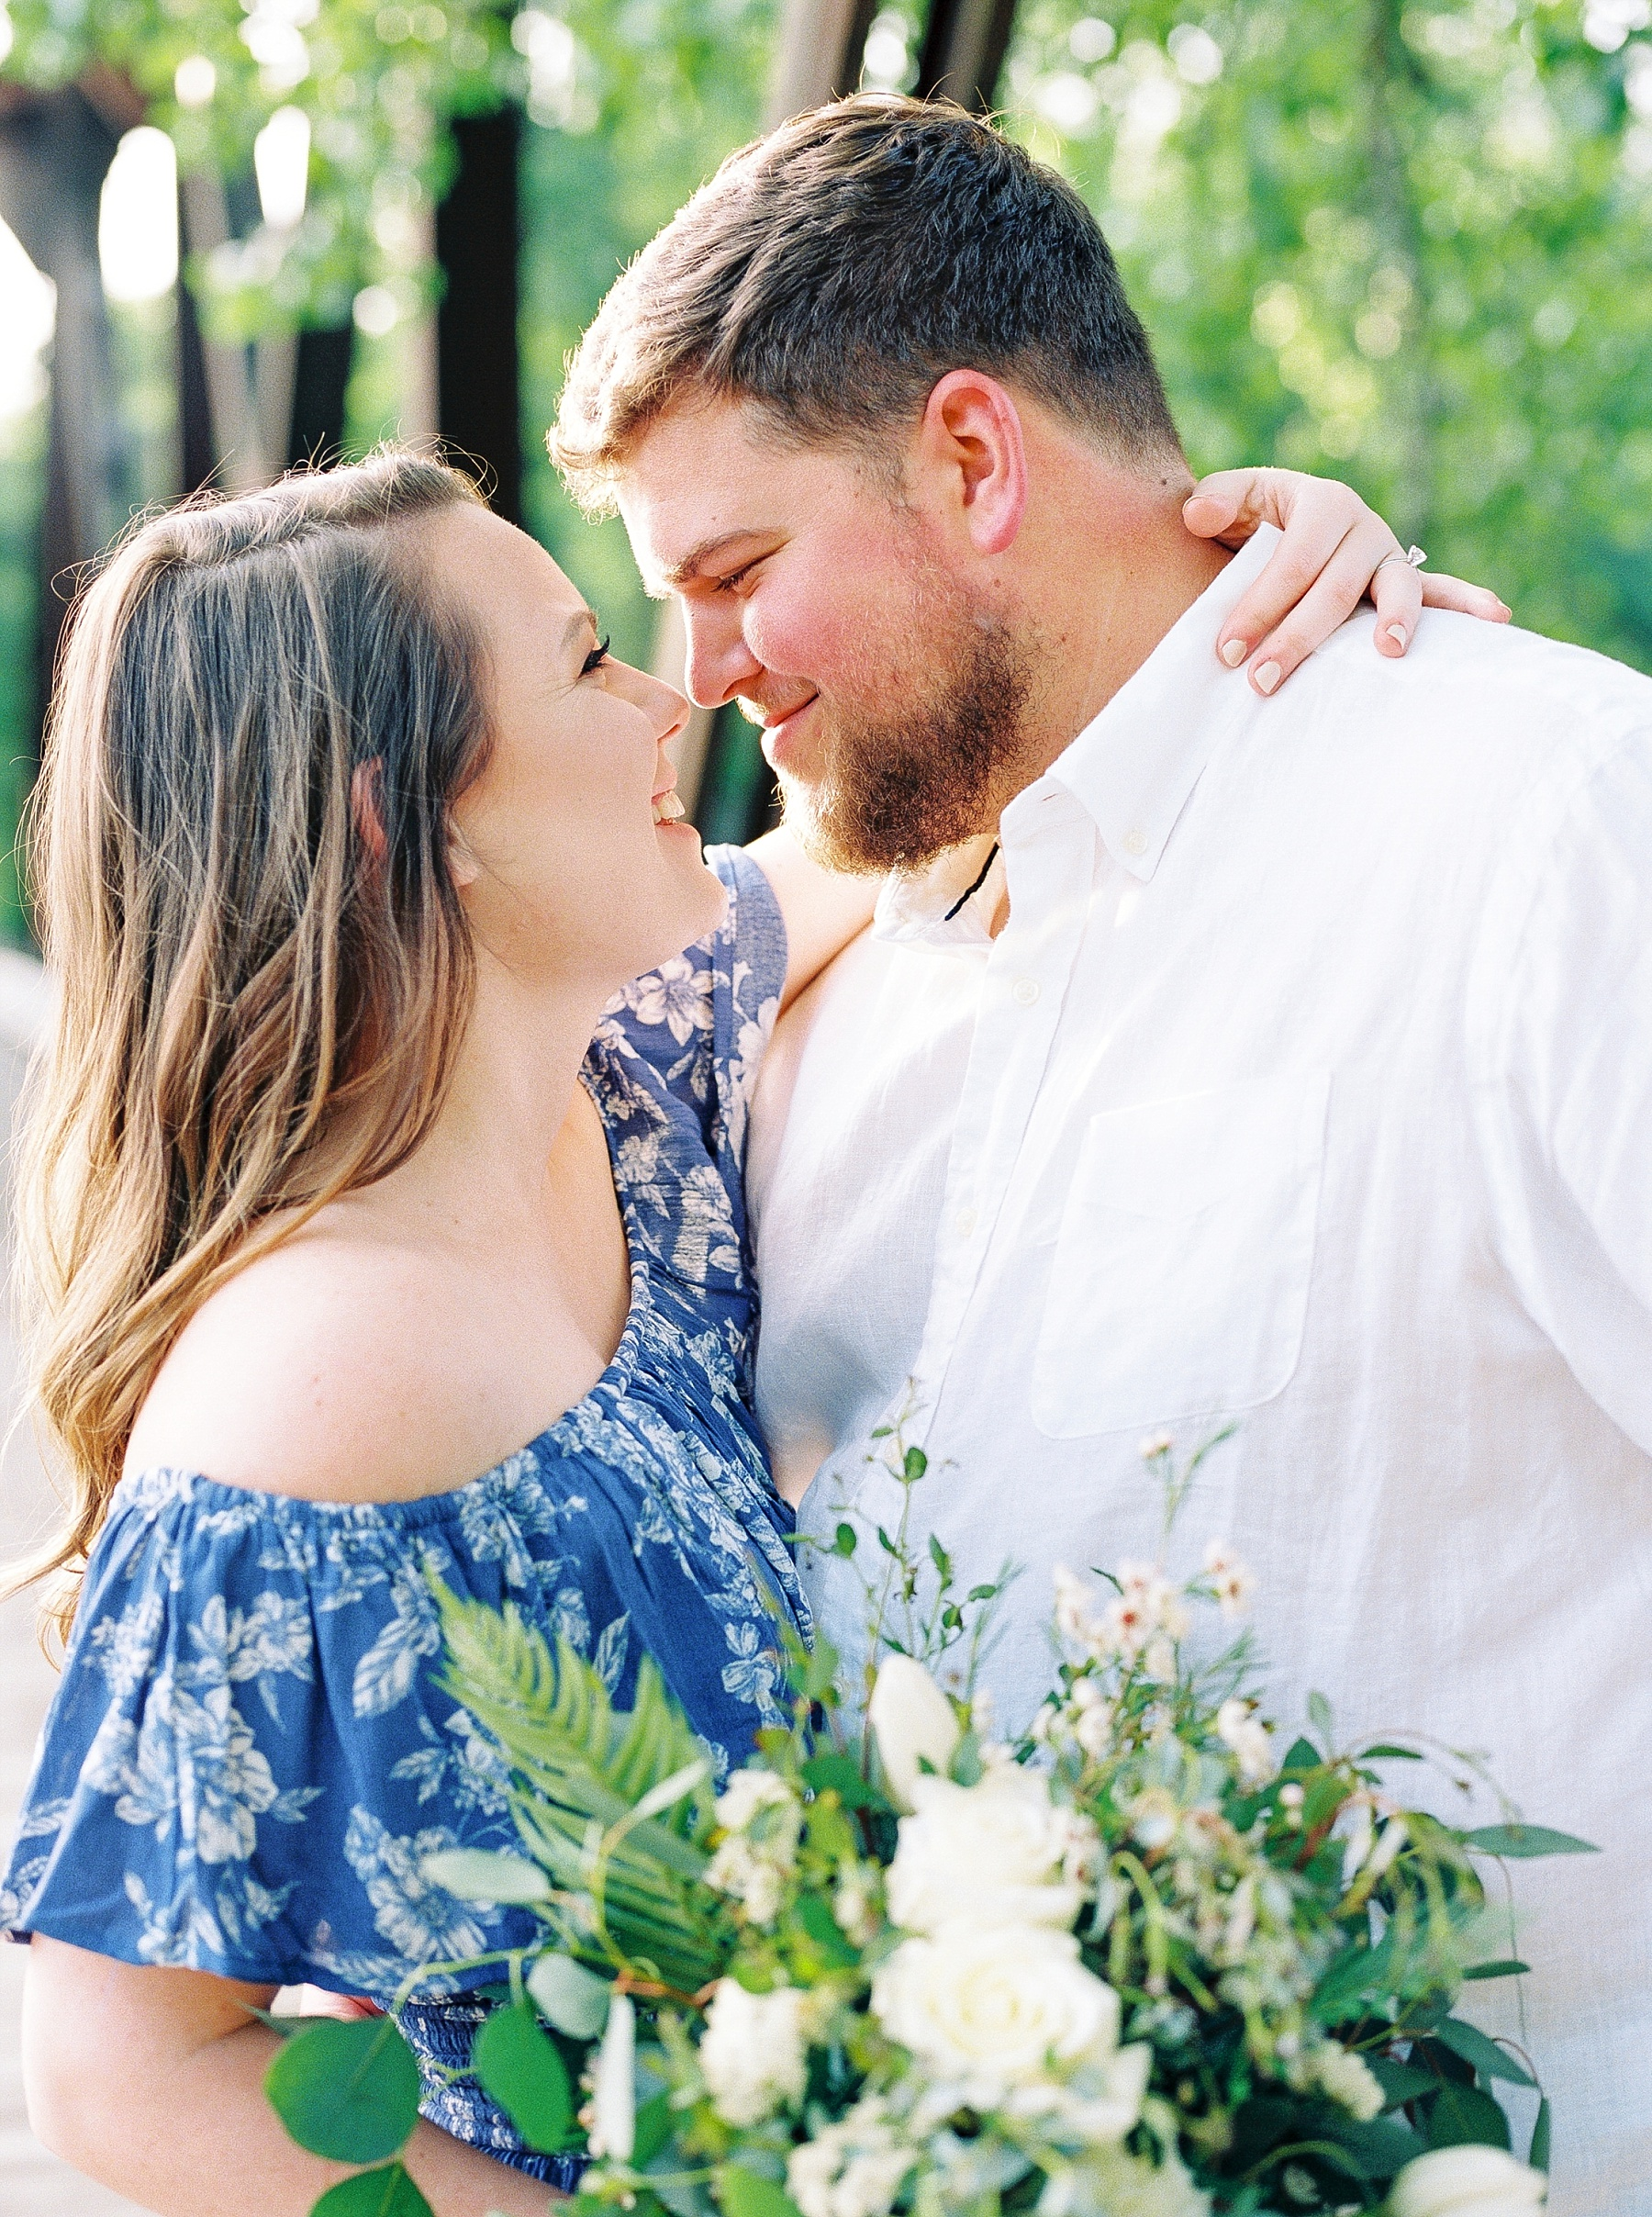 Flirty Spring Engagement Session with Floral Bouquet at Cooper's Landing by Kelsi Kliethermes Photography Best Missouri and Maui Wedding Photographer_0015.jpg